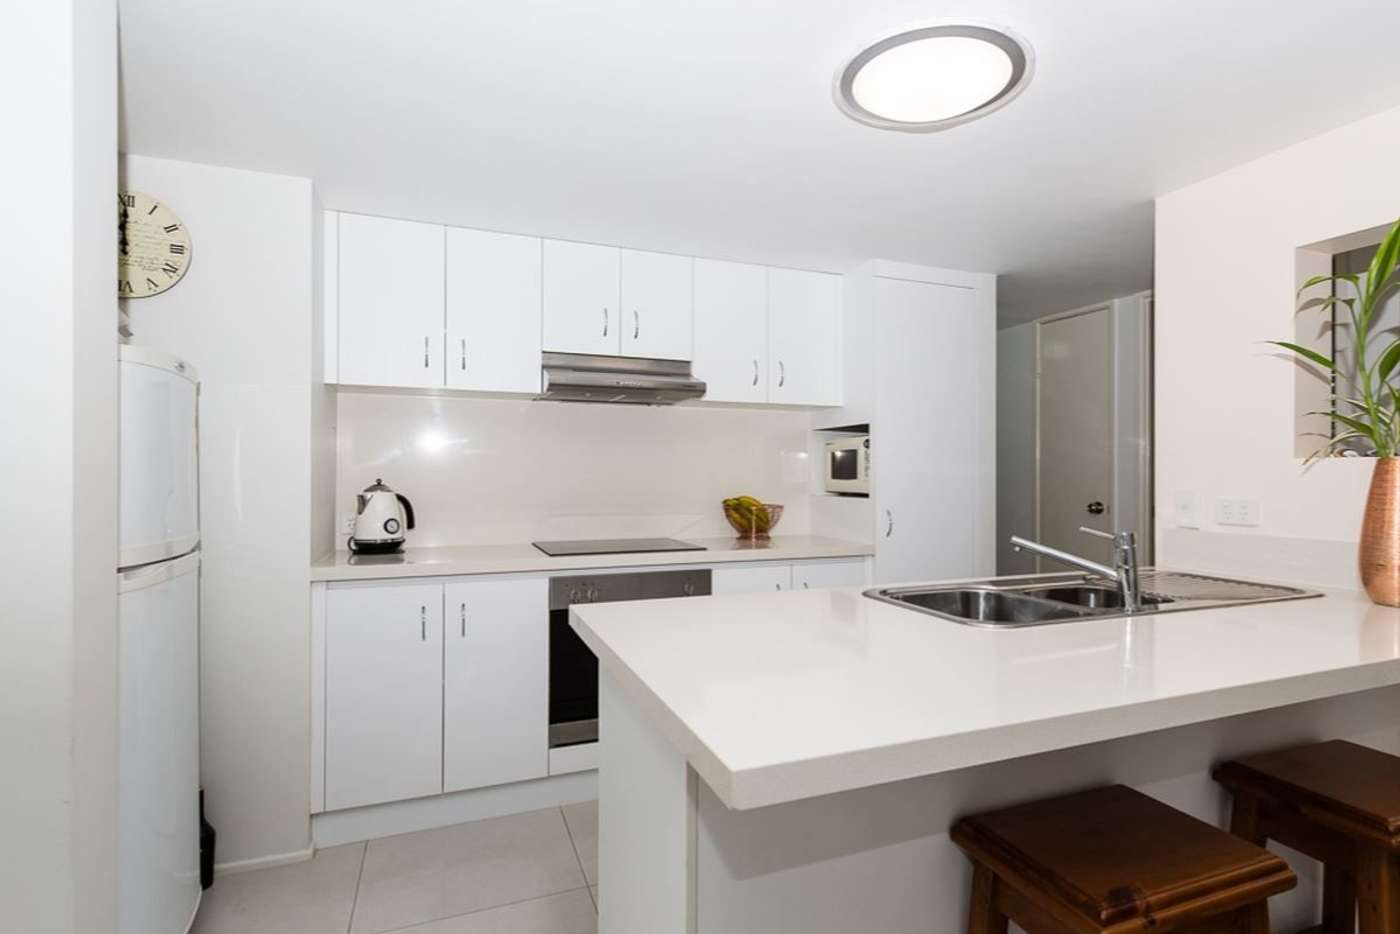 Main view of Homely unit listing, 215/2 Keem Street, Trinity Beach QLD 4879